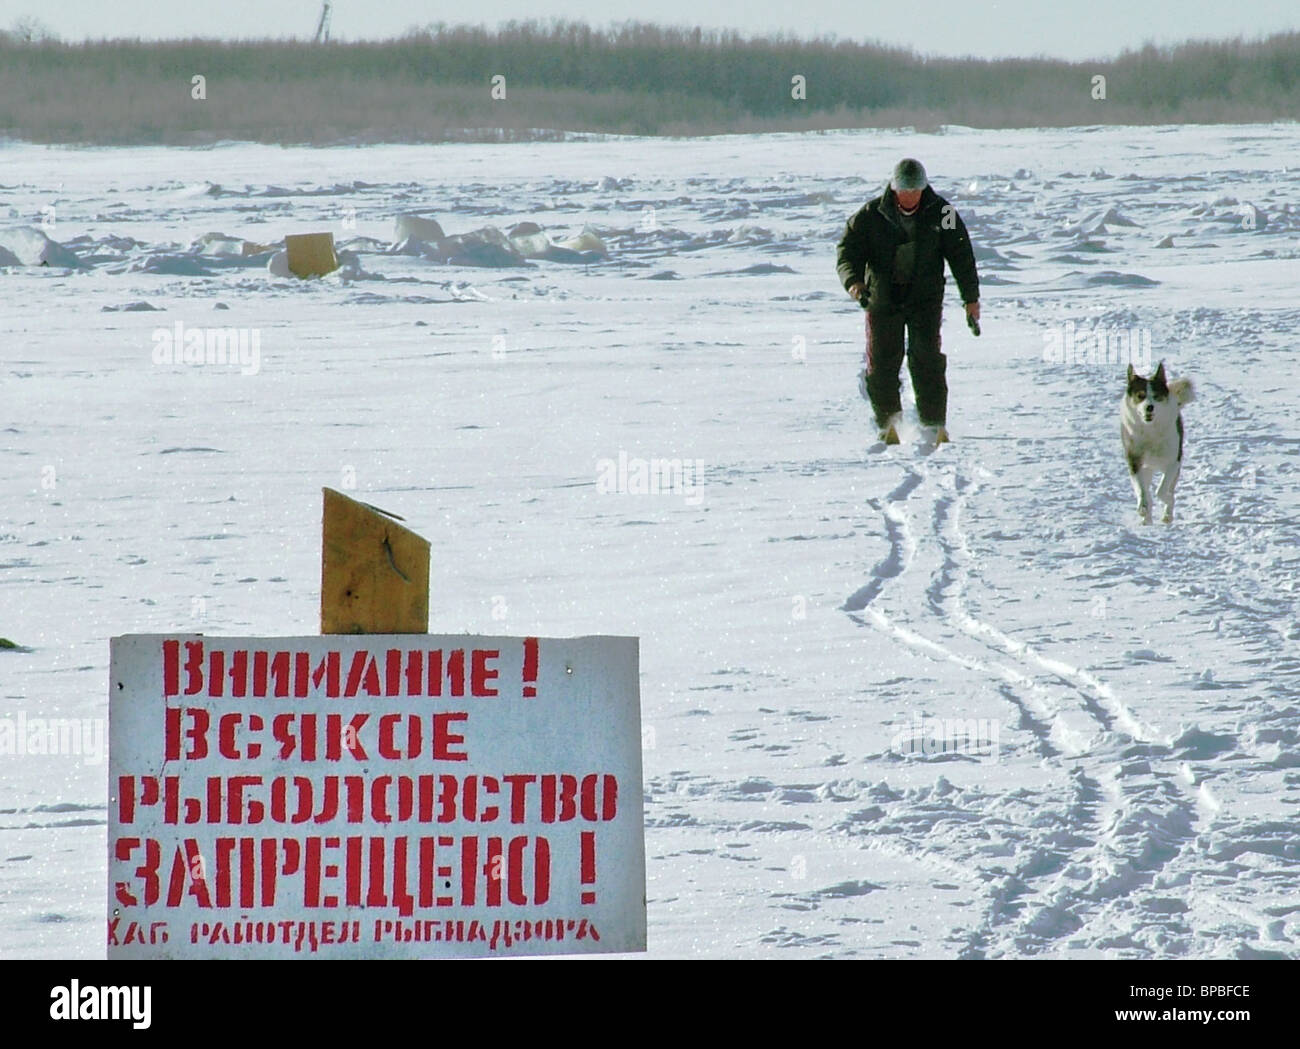 Fishing is completely prohibited in Amur River in Khabarovsk region - Stock Image